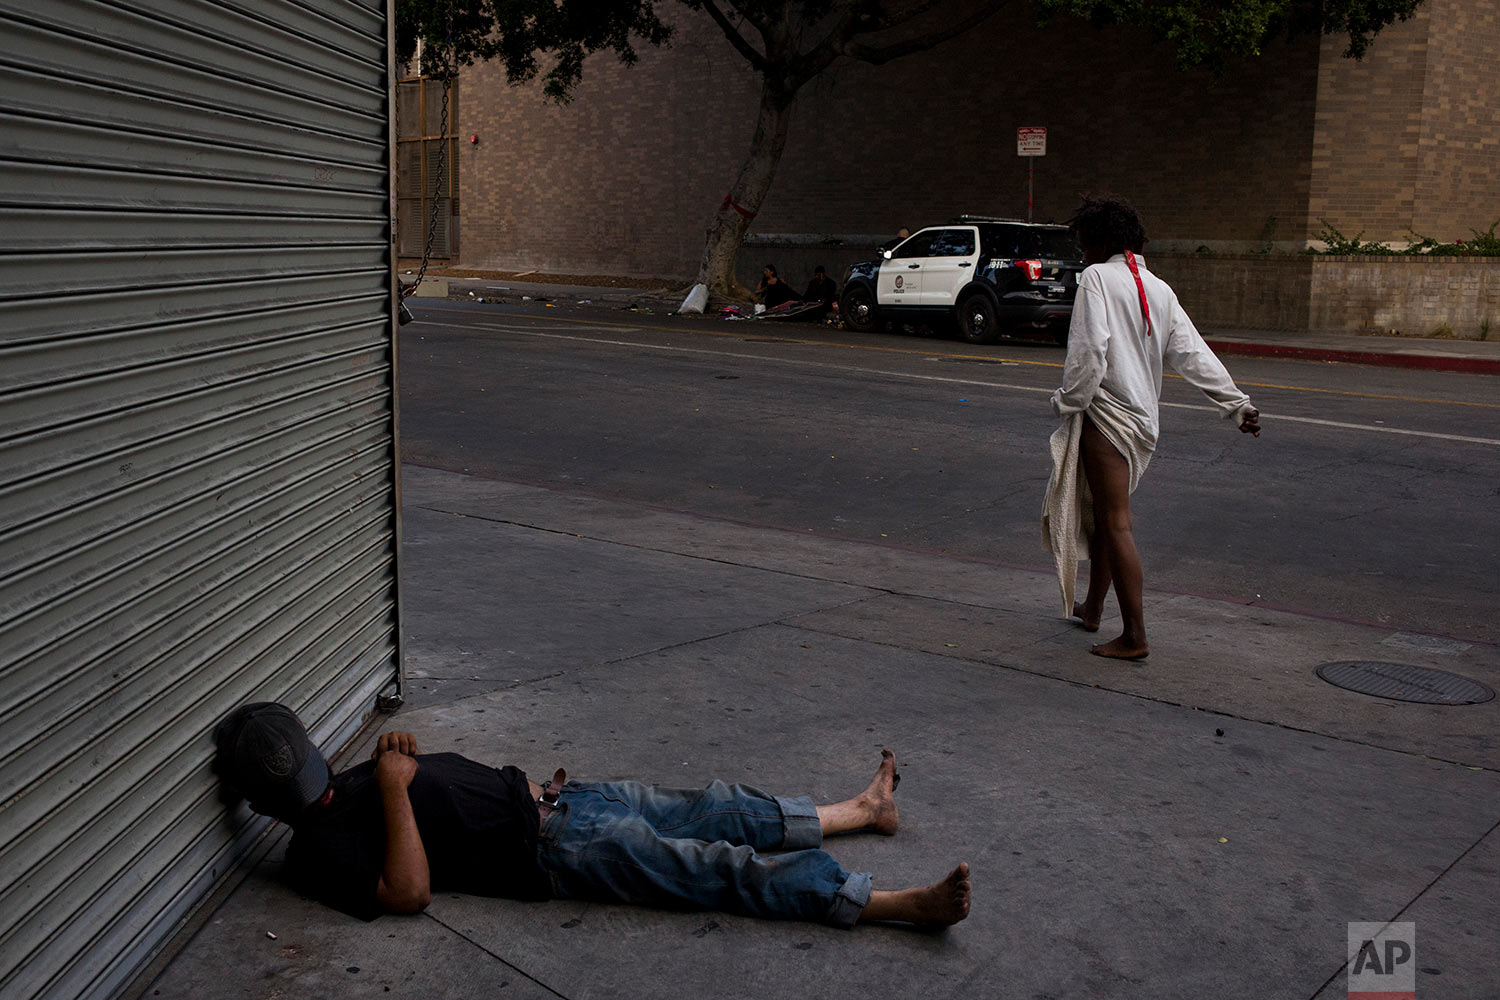 A mentally ill homeless woman walks past a man sleeping on a sidewalk in the Skid Row area of downtown Los Angeles, Friday, Sept. 1, 2017. (AP Photo/Jae C. Hong)